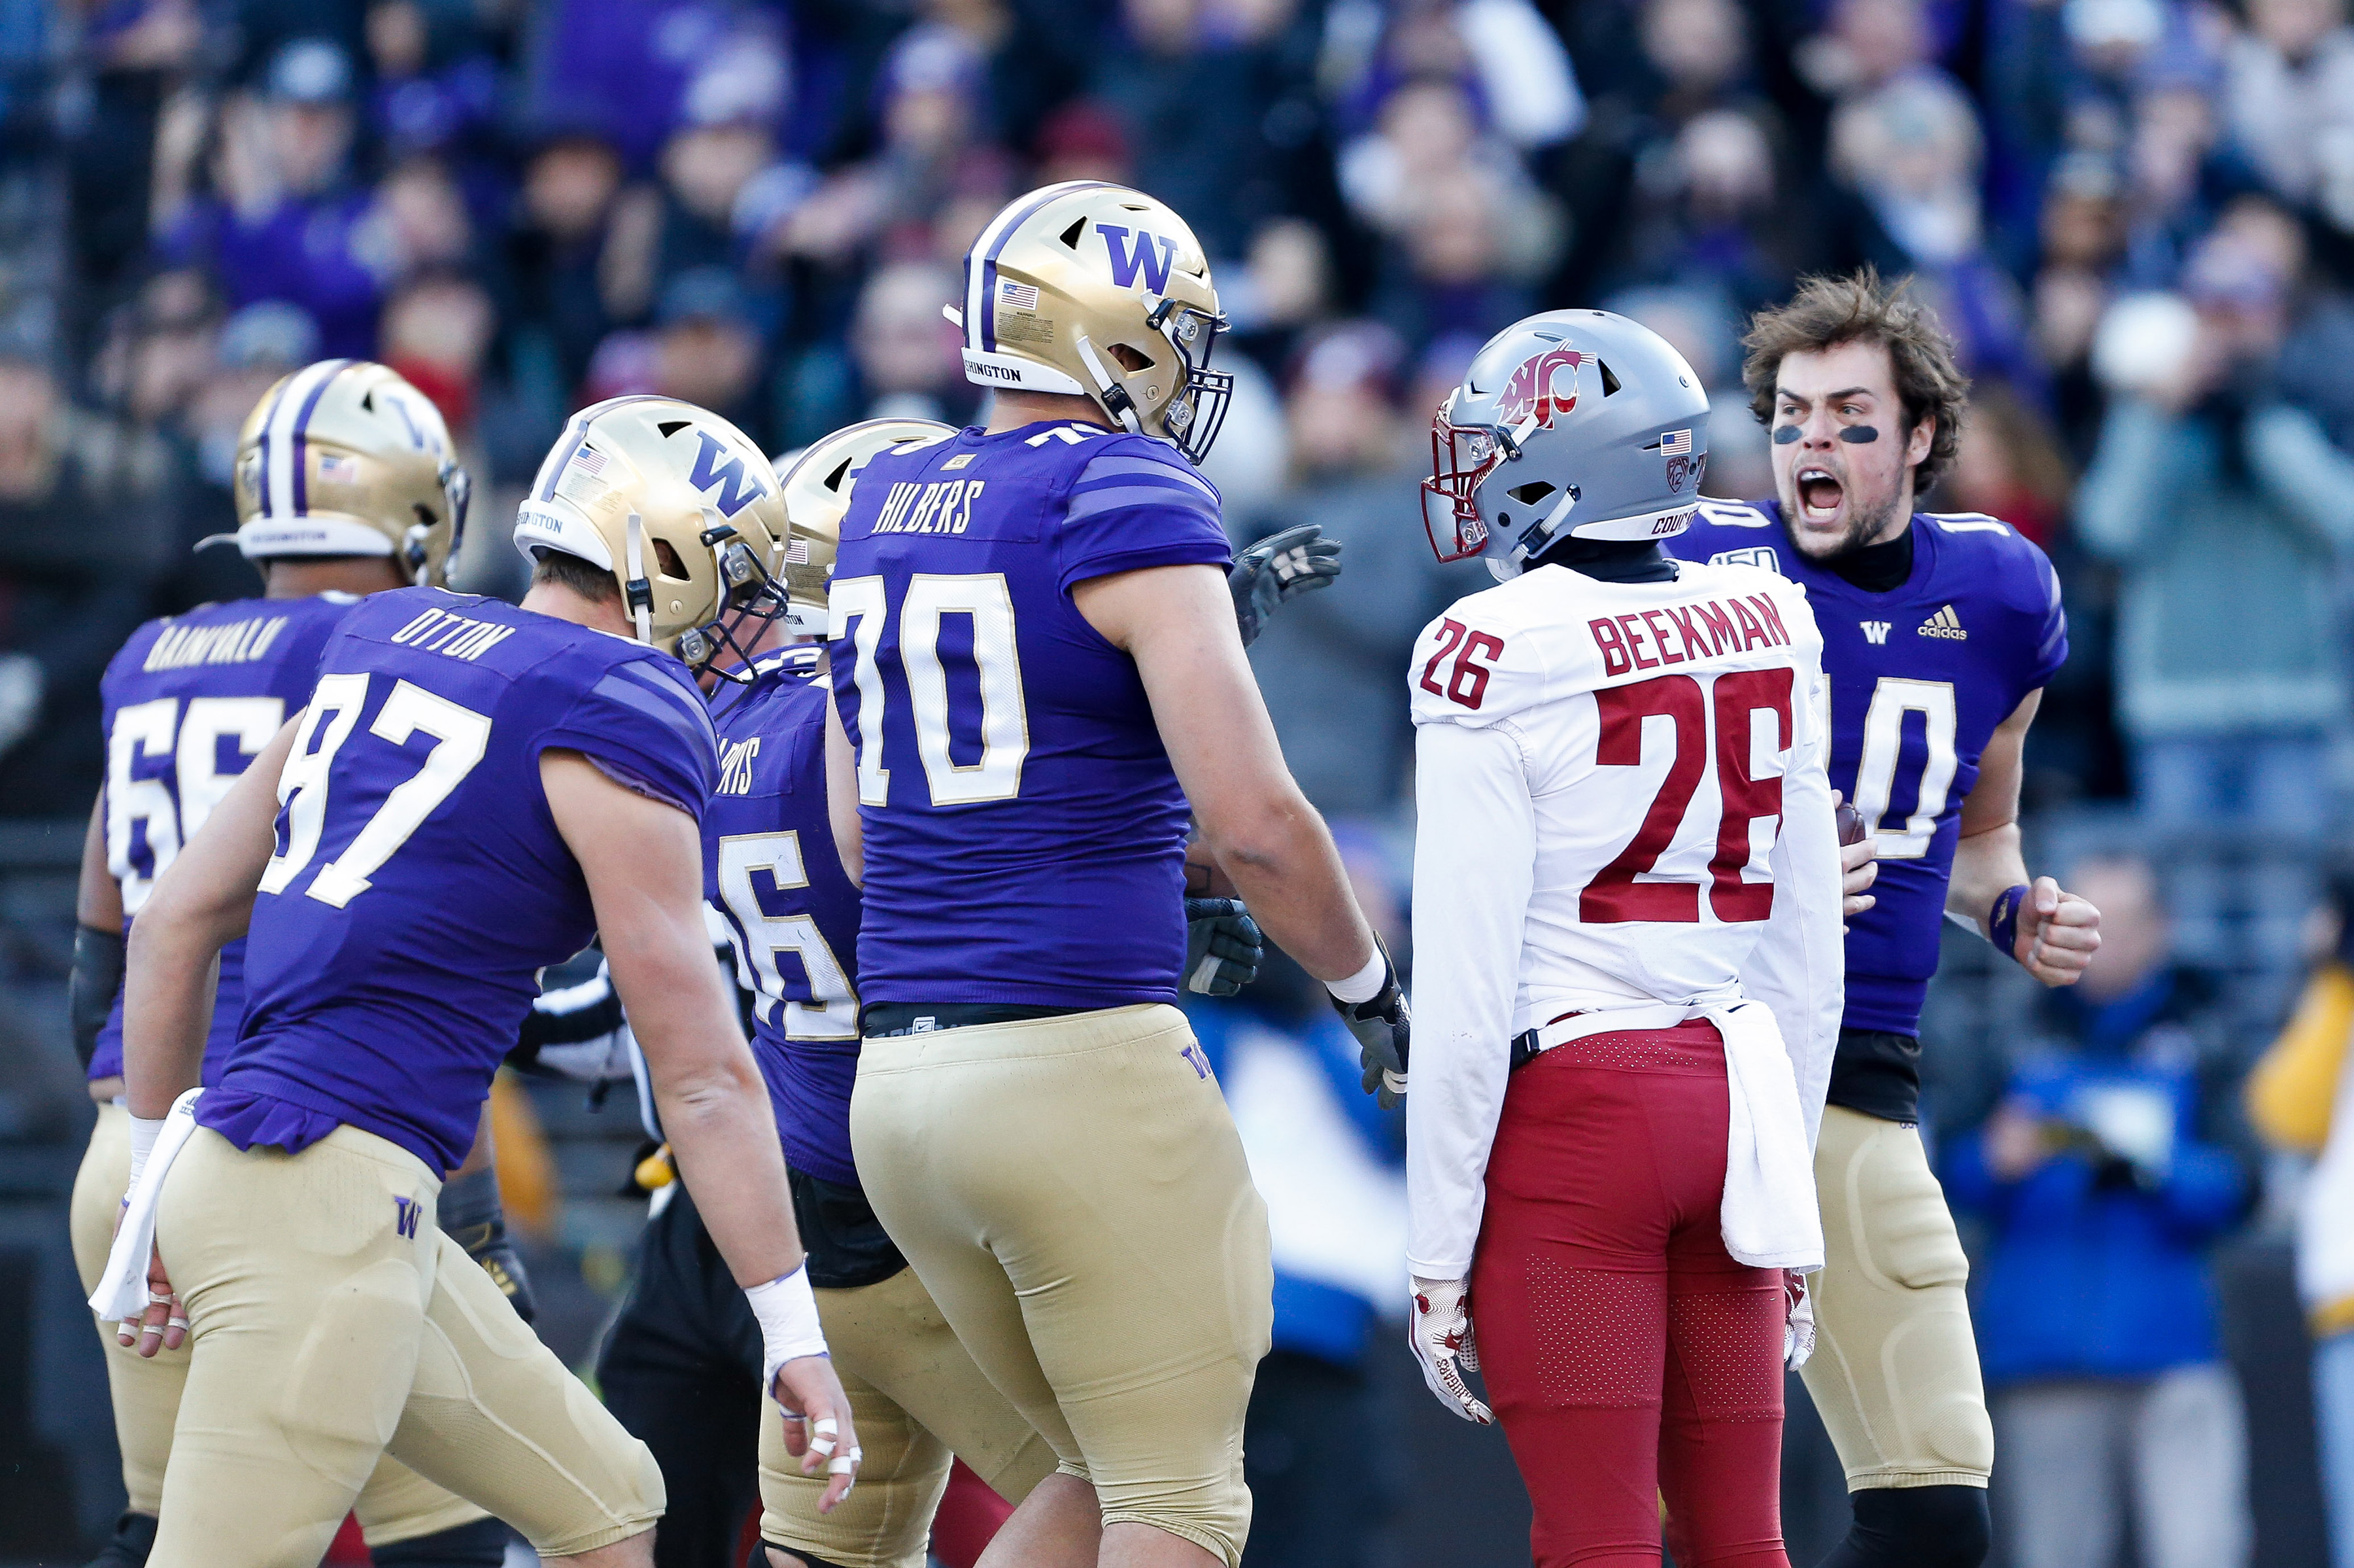 UW's Eason: 'Super Proud to be a Husky'